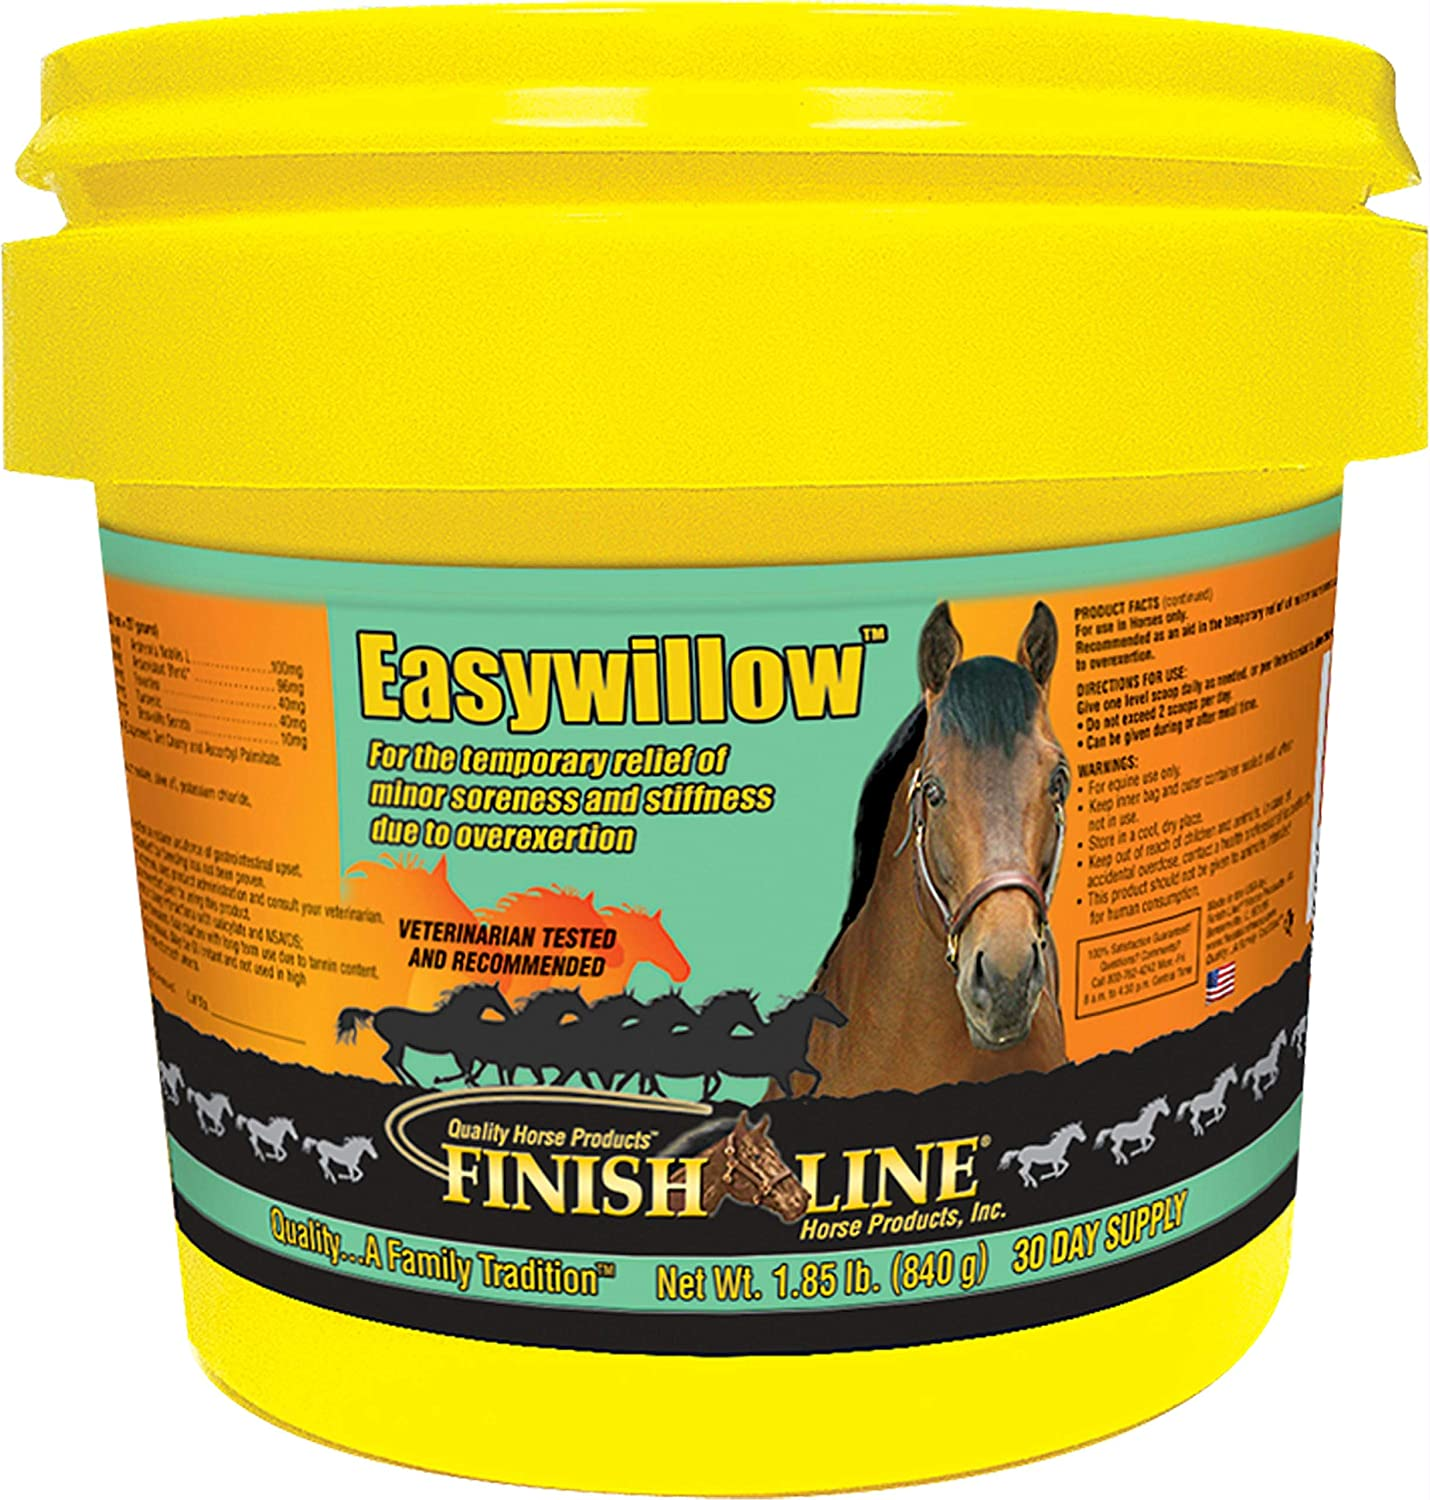 Finish Line Easywillow Pain Relief Supplement